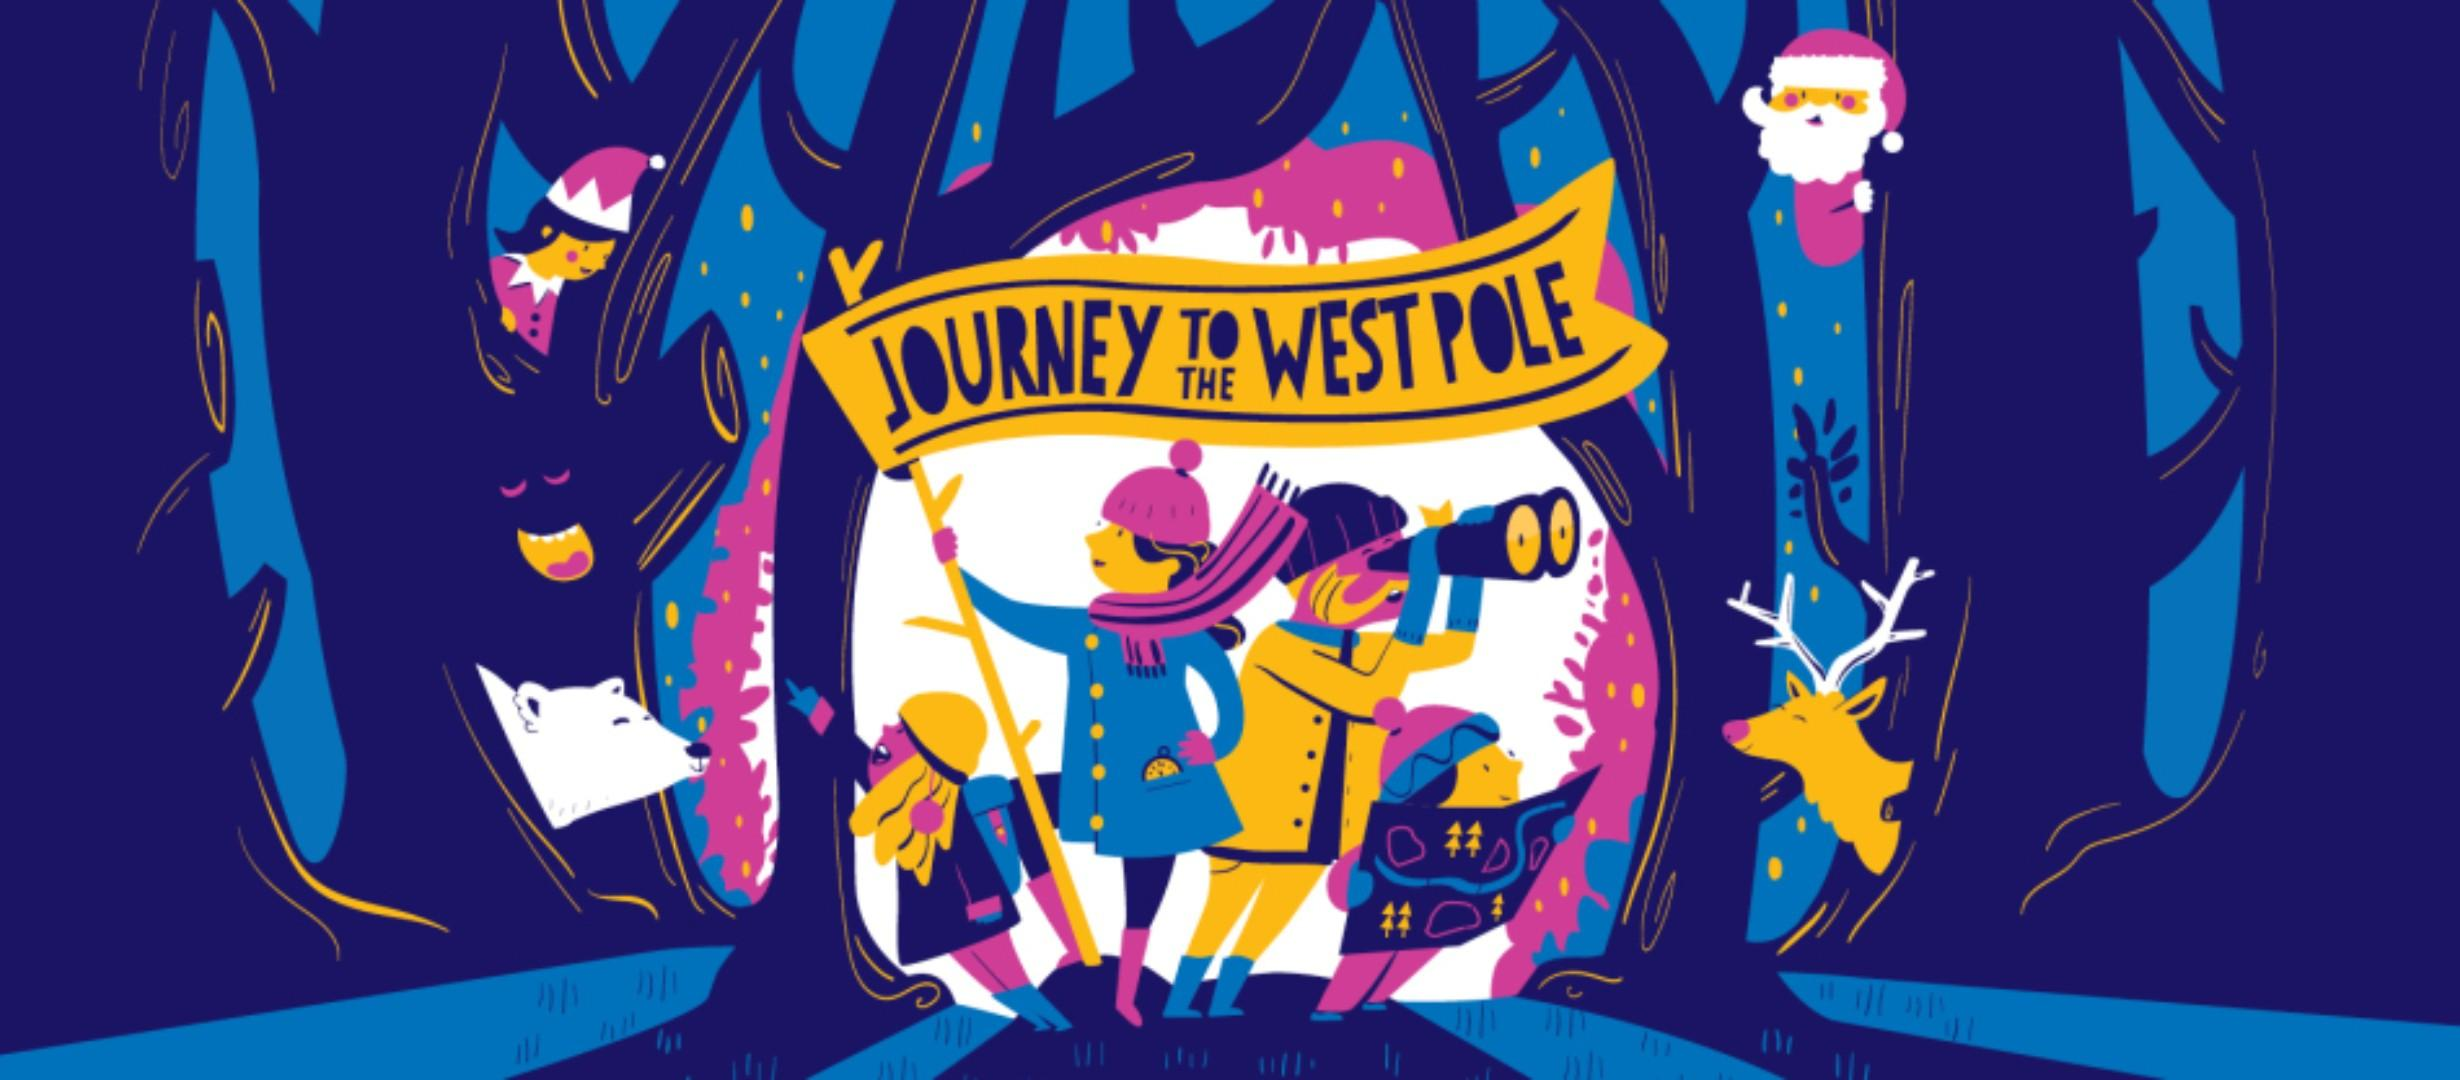 text reads 'Journey to the west pole'. cartoon image of a family exploring